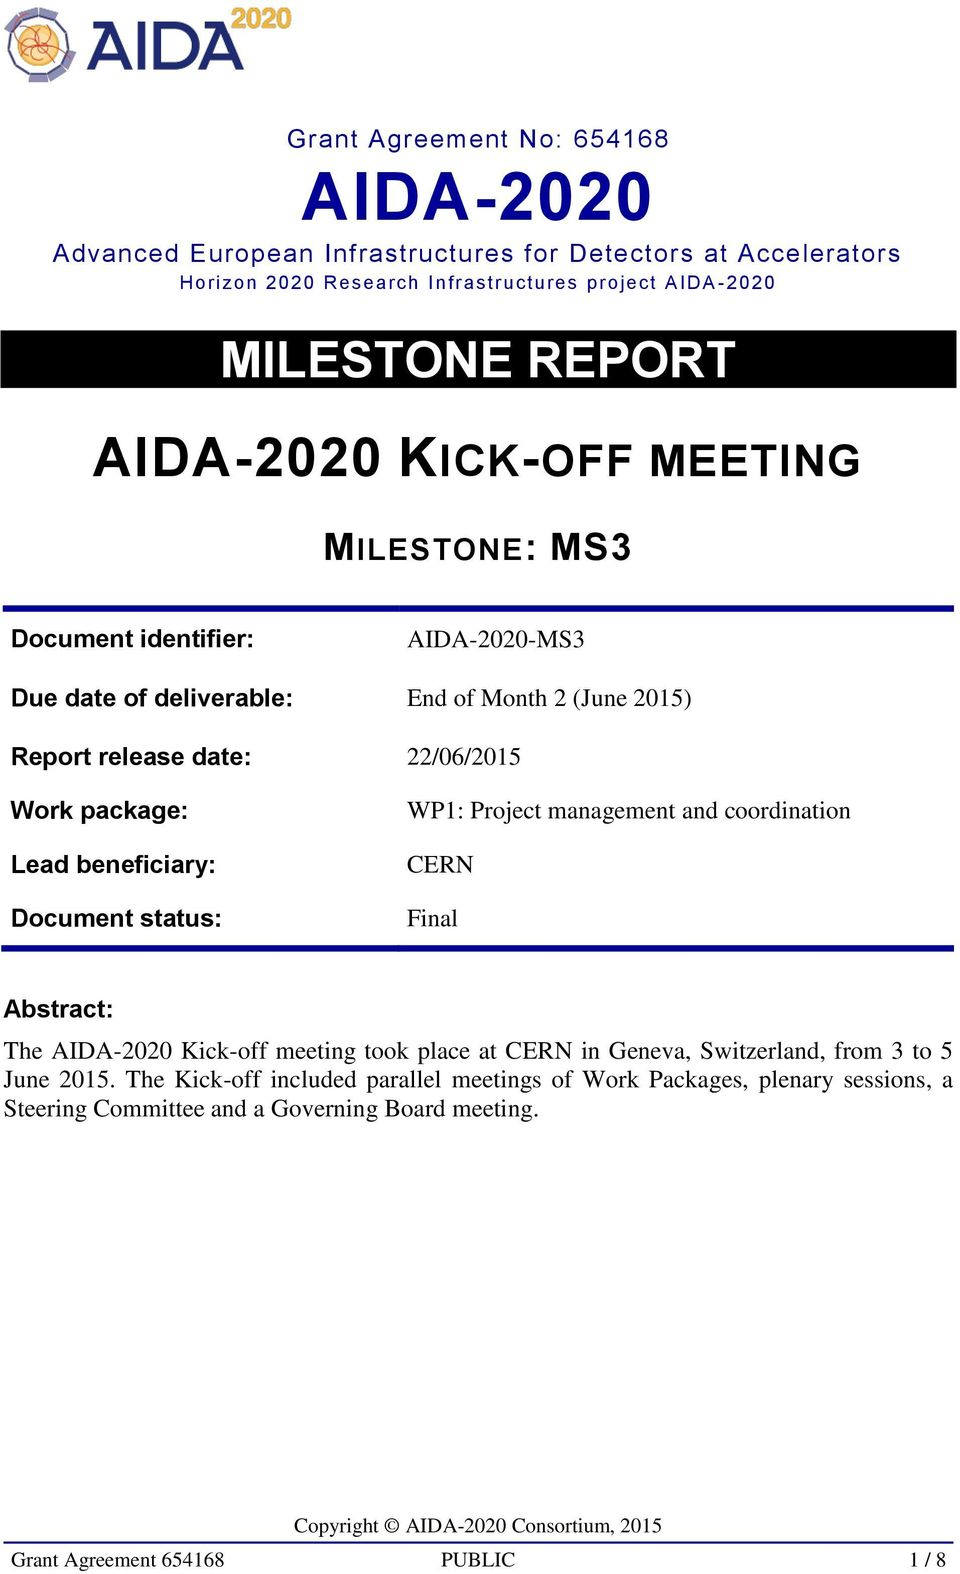 beneficiary: Document status: WP1: Project management and coordination Final Abstract: The AIDA-2020 Kick-off meeting took place at in Geneva, Switzerland, from 3 to 5 June 2015.